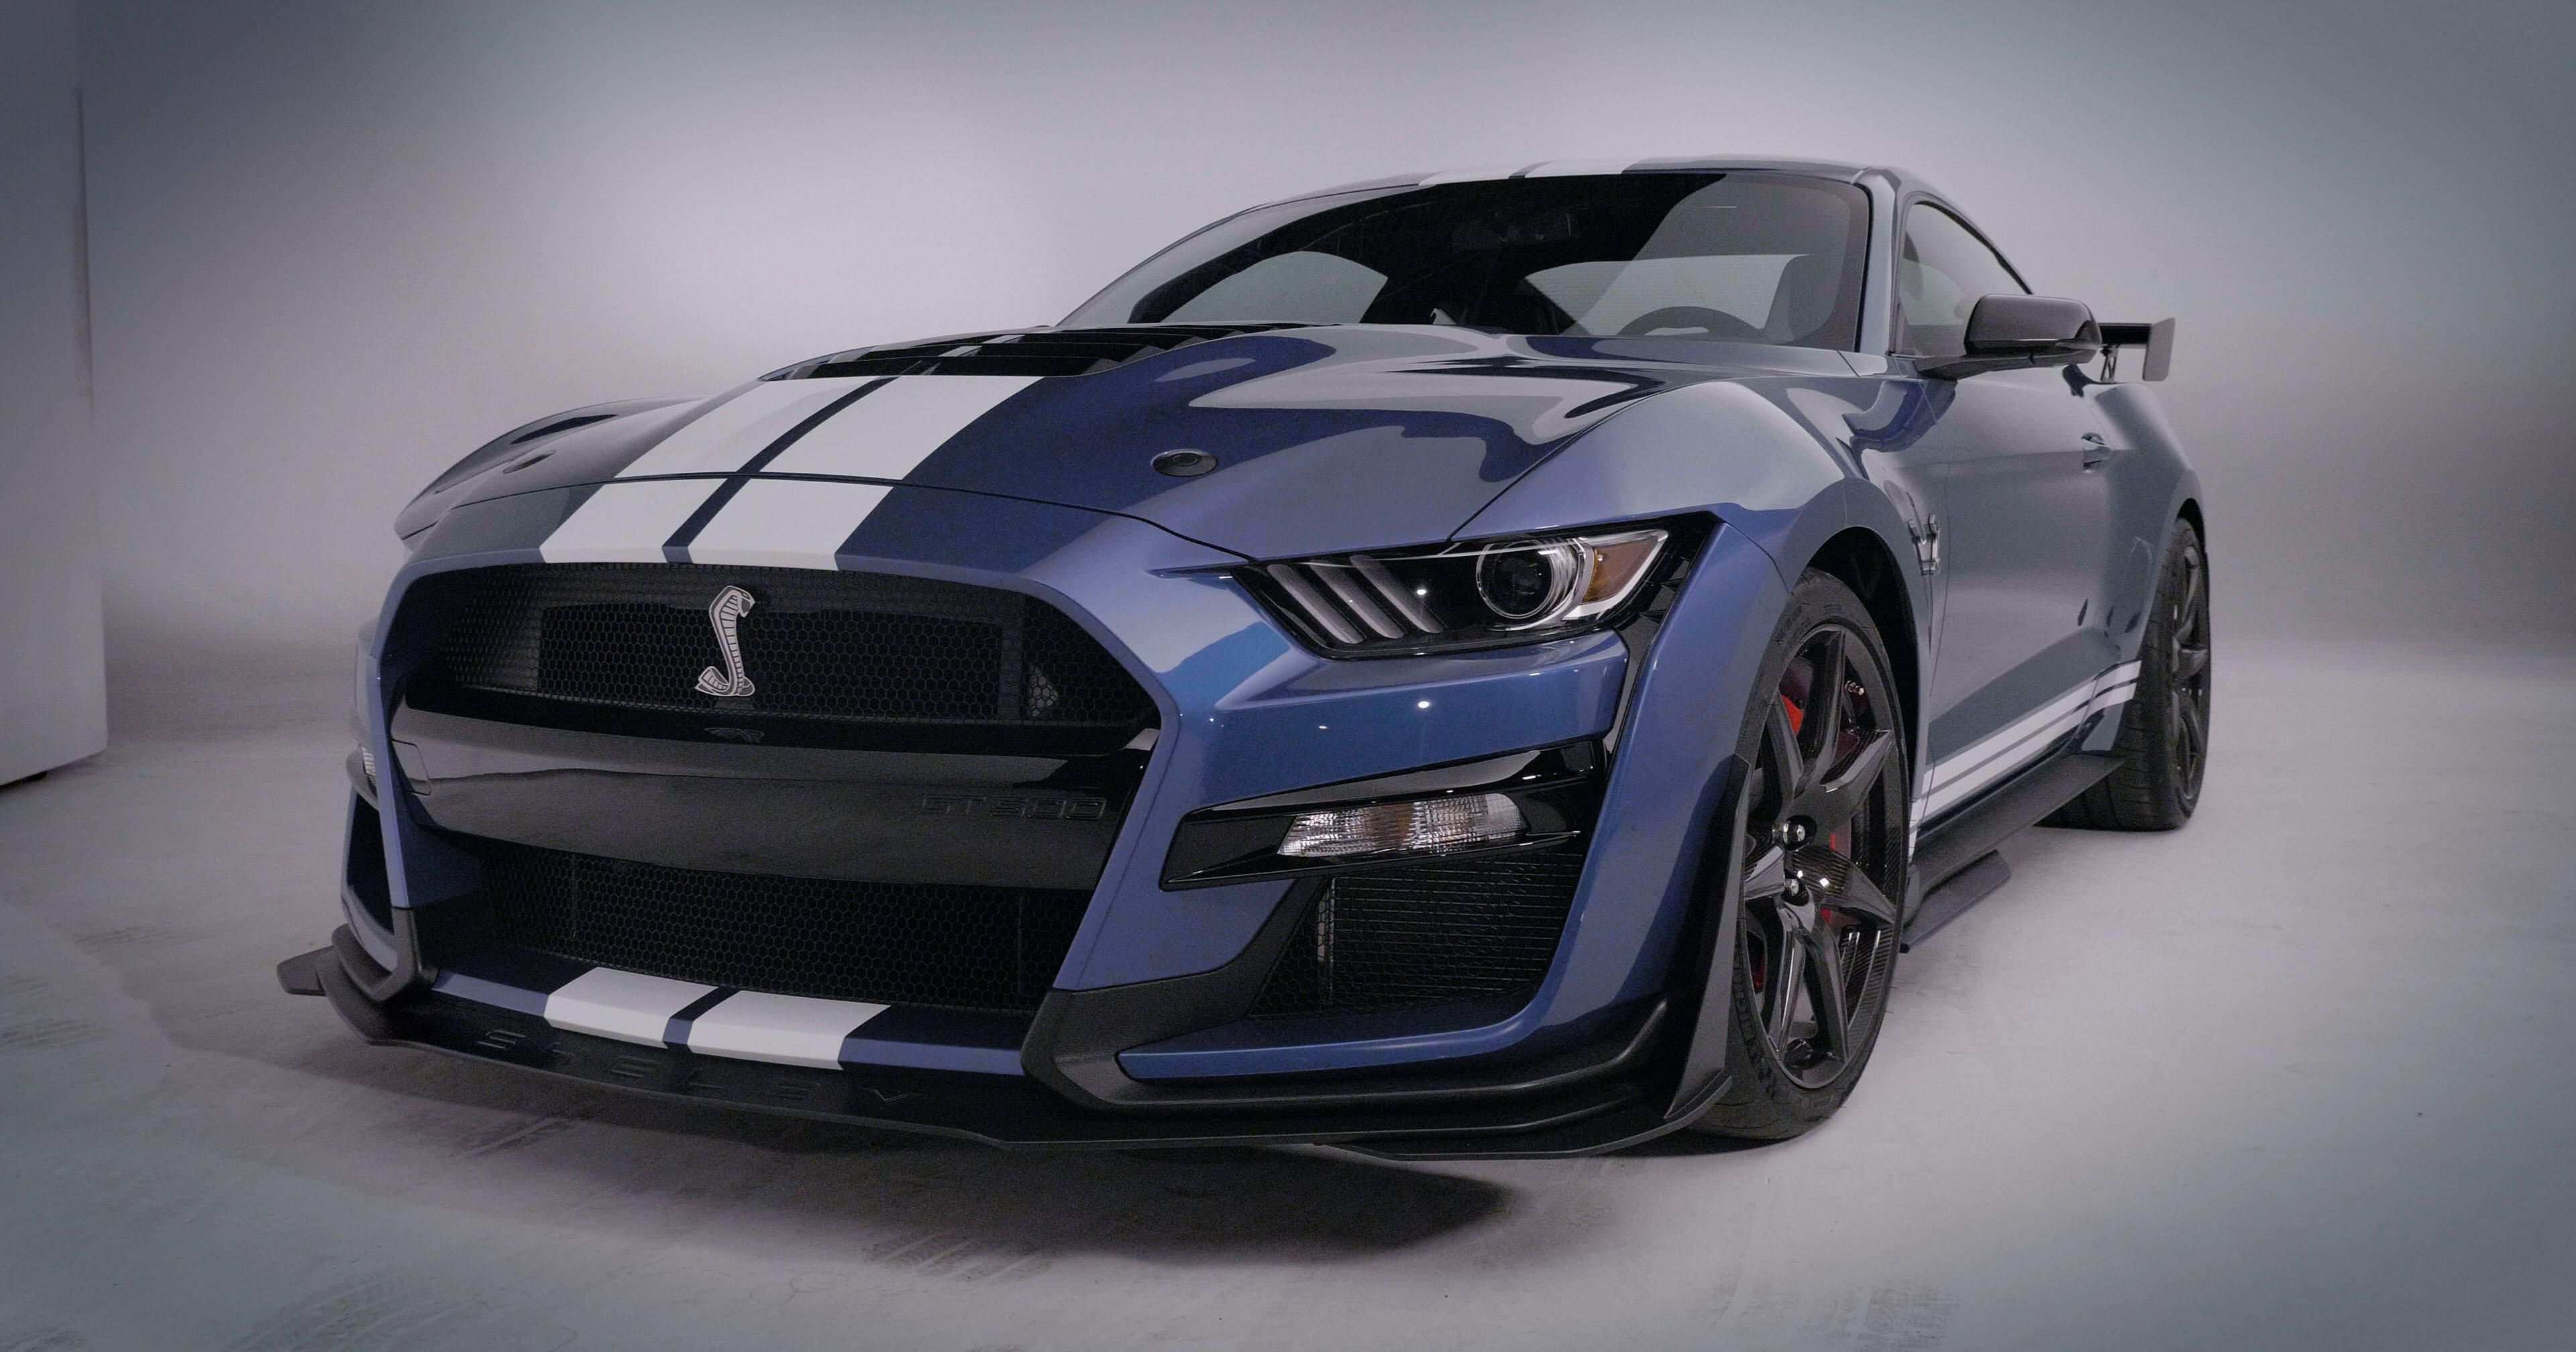 32 Best Review 2020 Ford Mustang Gt Performance with 2020 Ford Mustang Gt